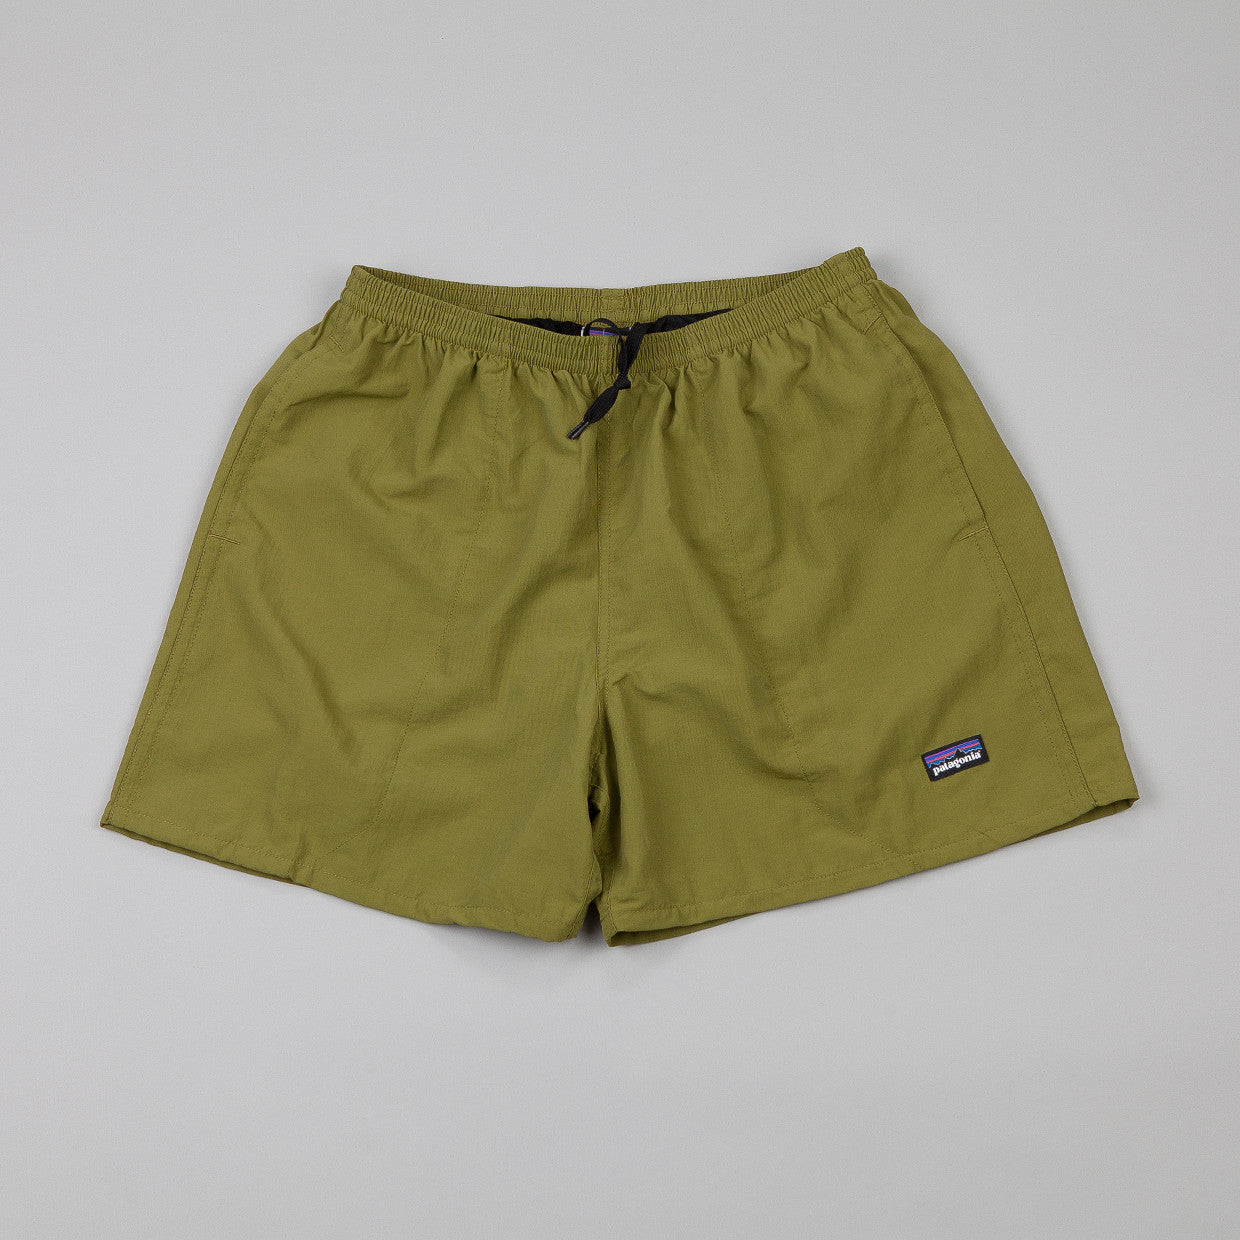 "Patagonia Baggies¢€ž¢ Shorts 5"" Willow Herb"